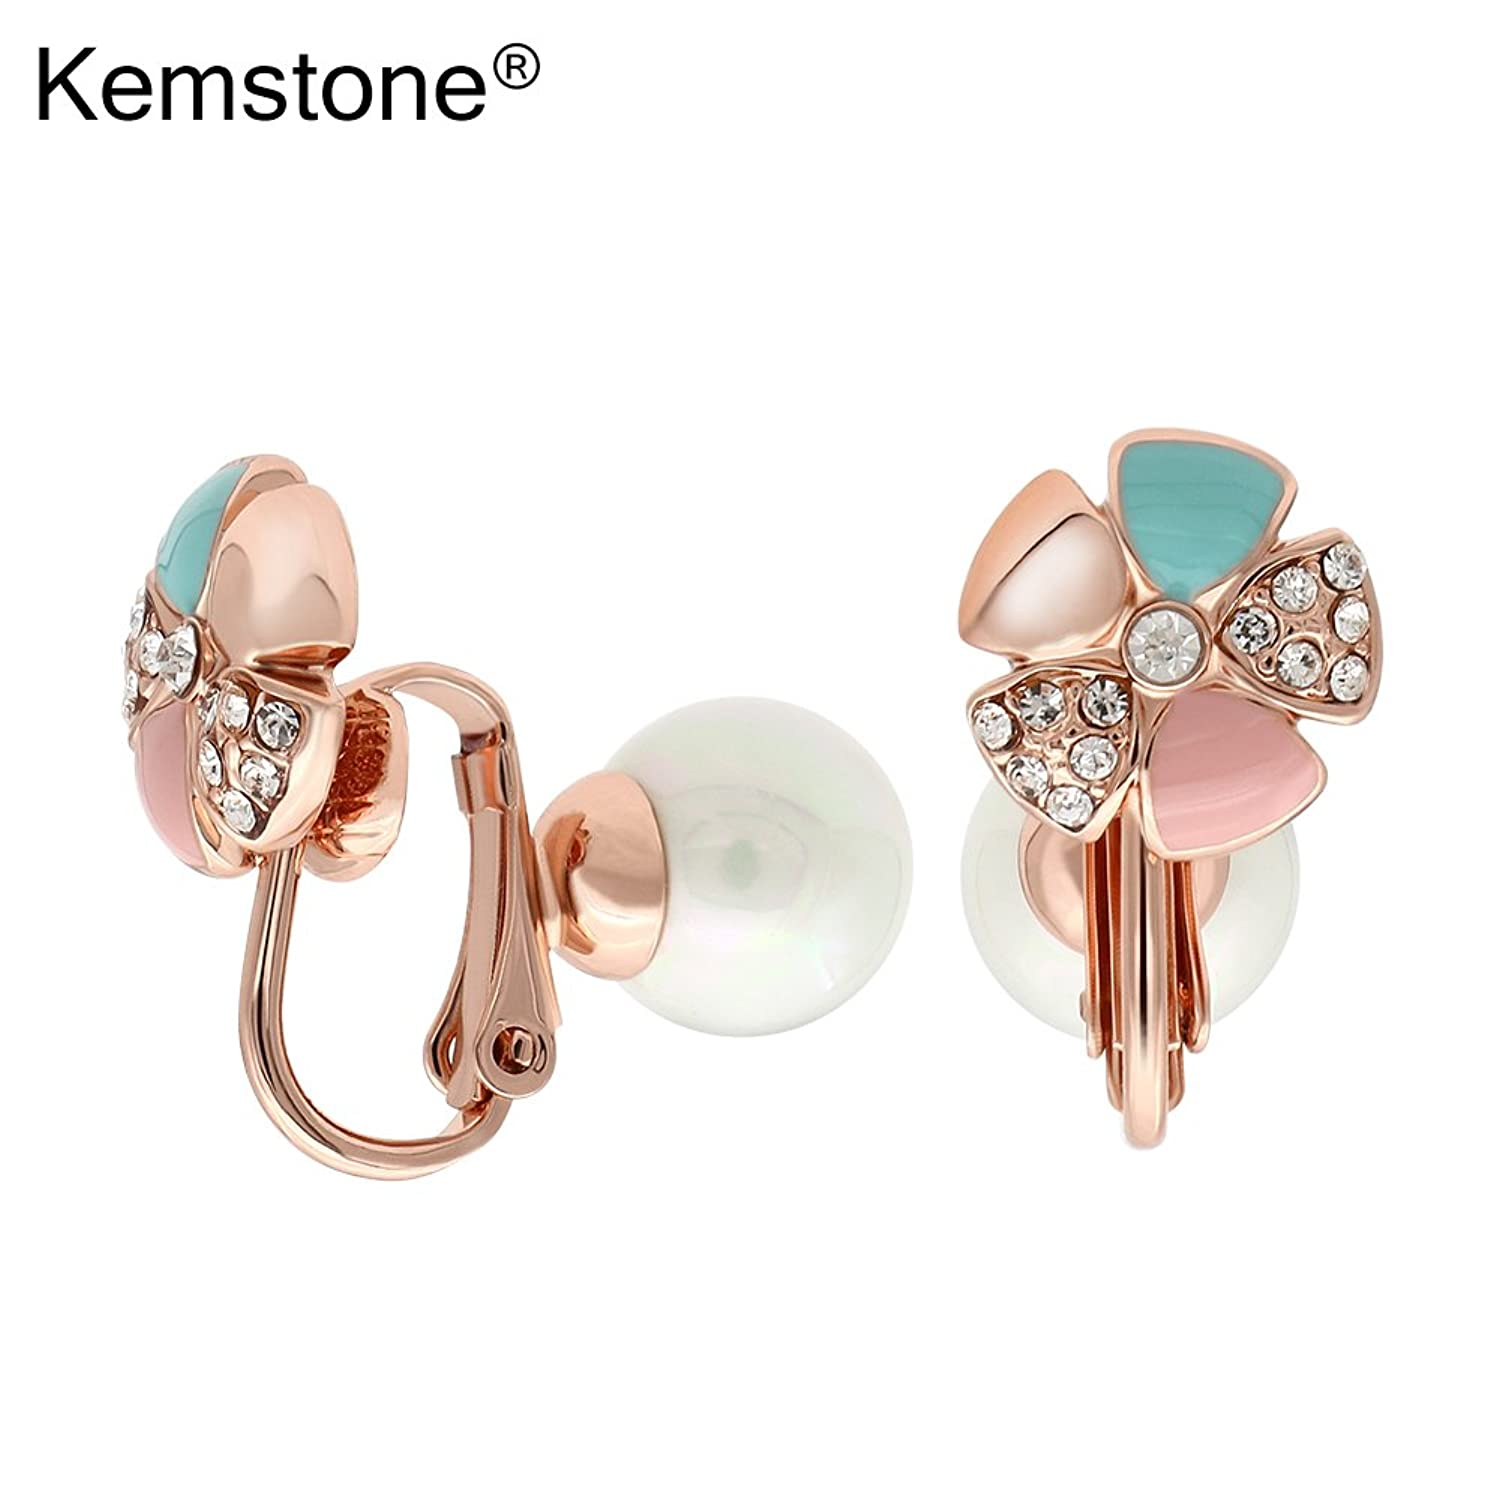 Kemstone Rose Gold Plated Simulated Pearl Cubic Zirconia Clip-on Double Side Earrings 5VhsMKtE